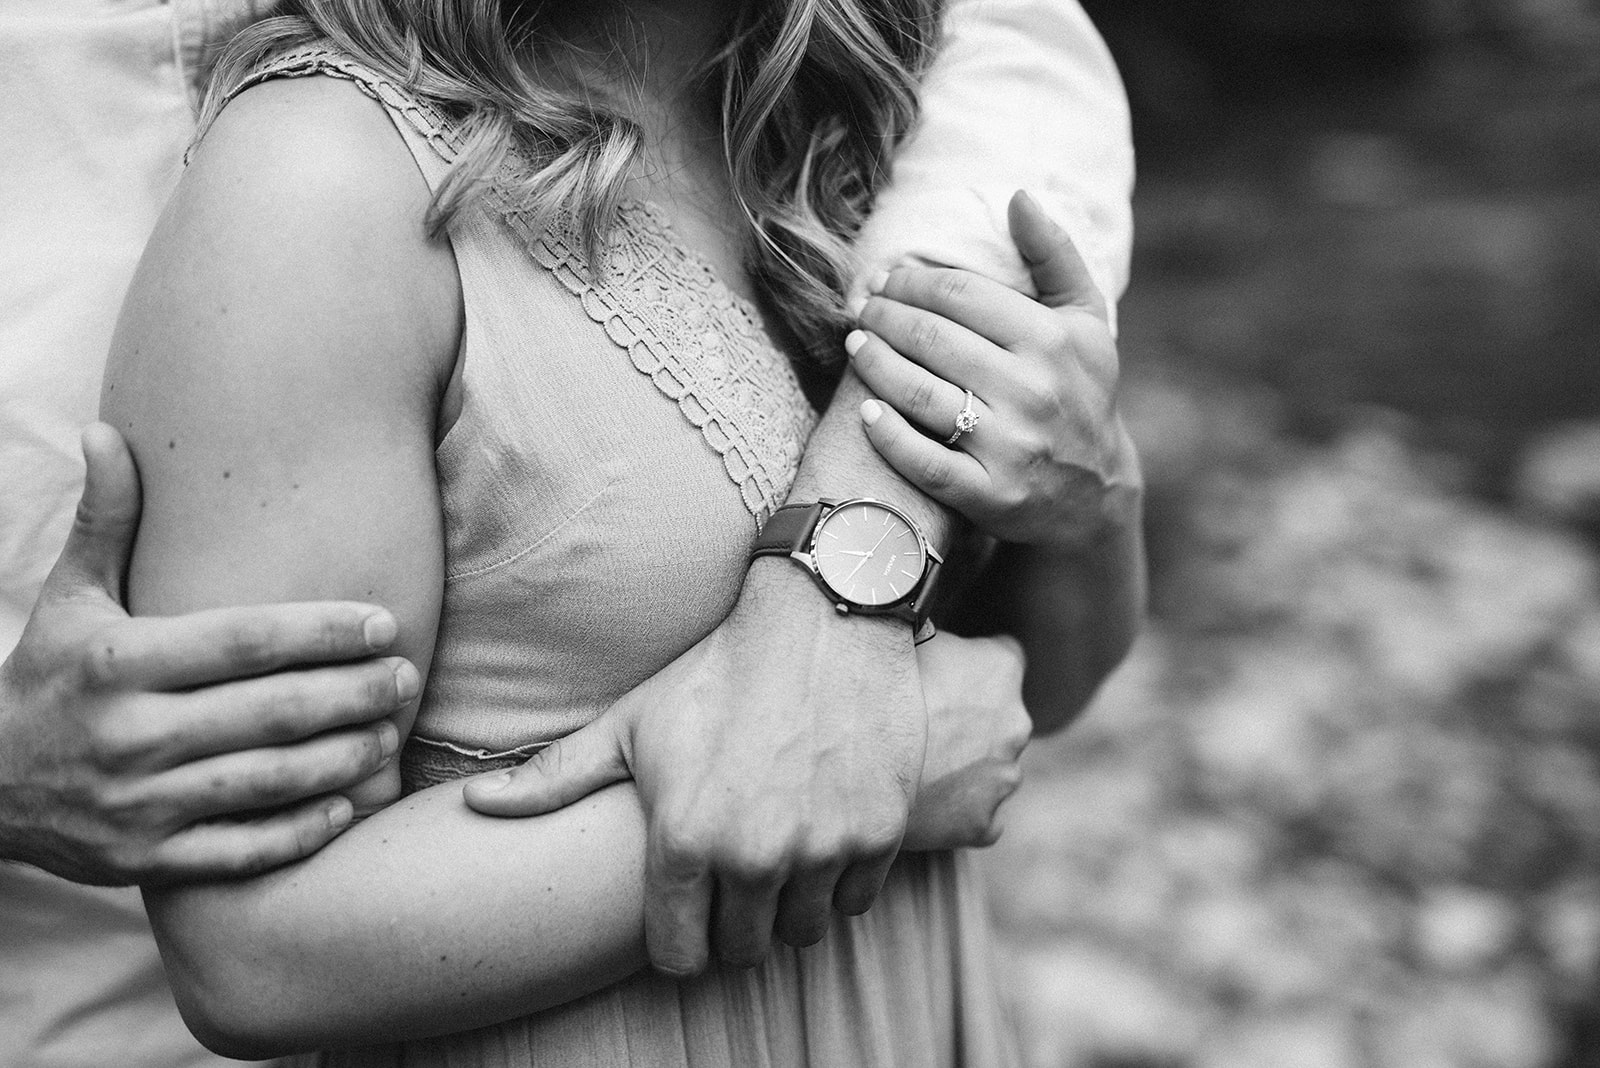 MVMT watch and engagement ring close up from wedding photographer in Lancaster, PA.